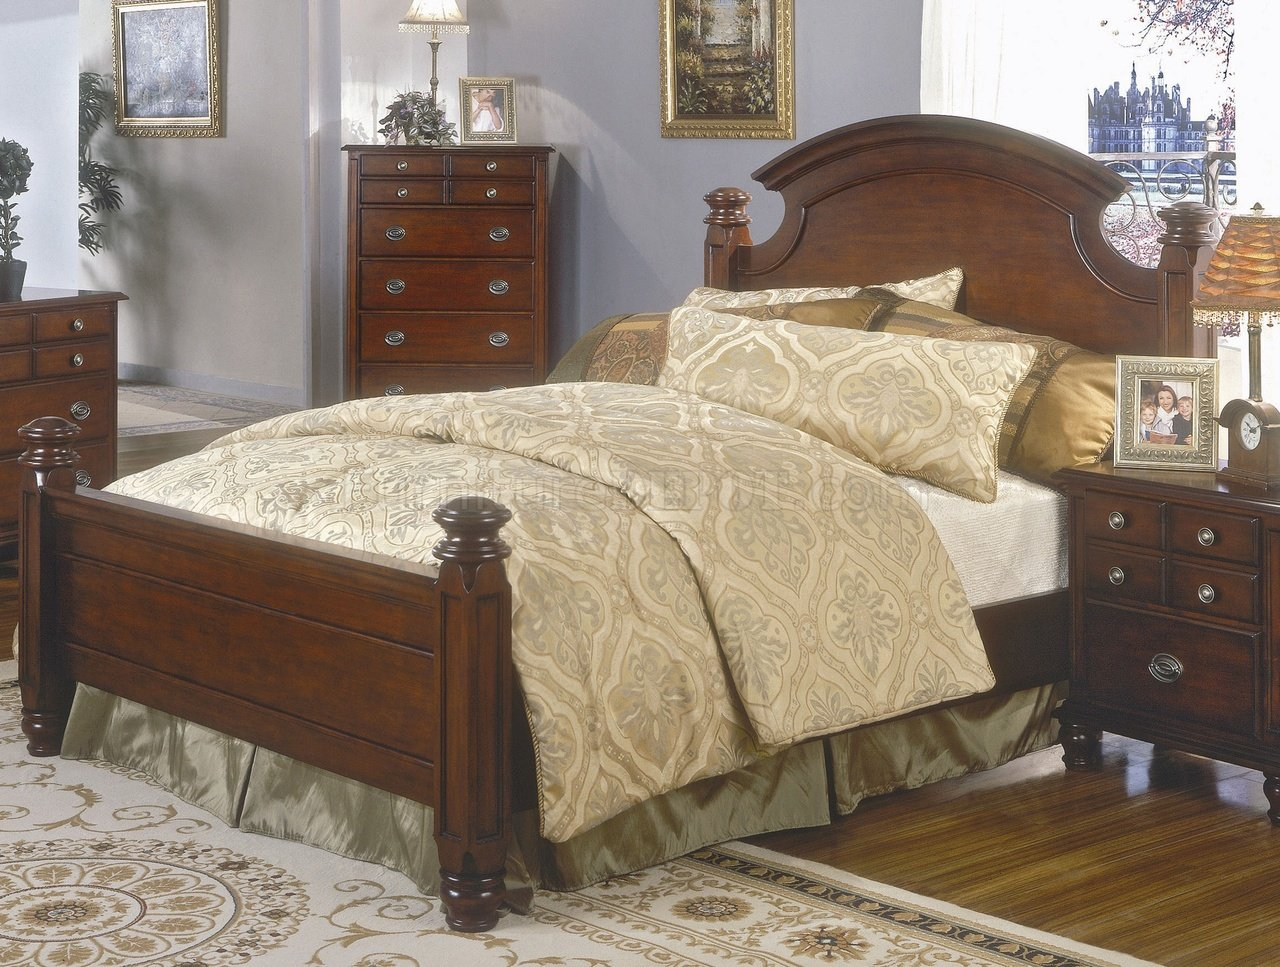 Brown cherry finish classic bedroom set w queen size bed - Queen size bedroom furniture sets ...